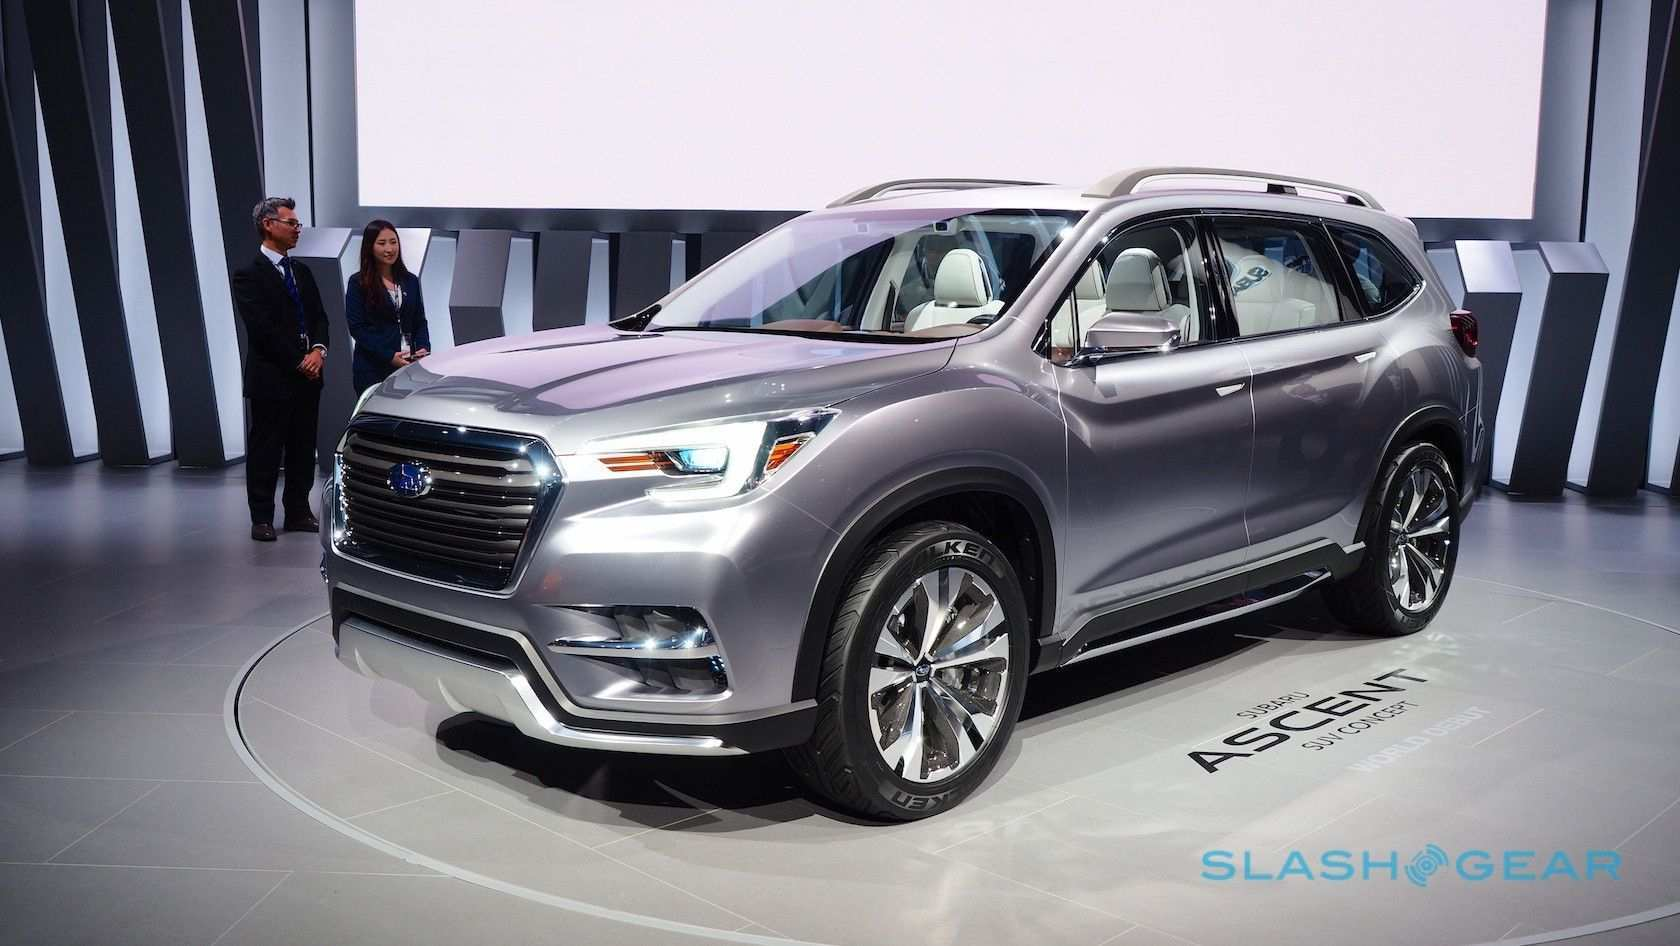 40 Concept of 2019 Subaru Ascent Dimensions Concept by 2019 Subaru Ascent Dimensions